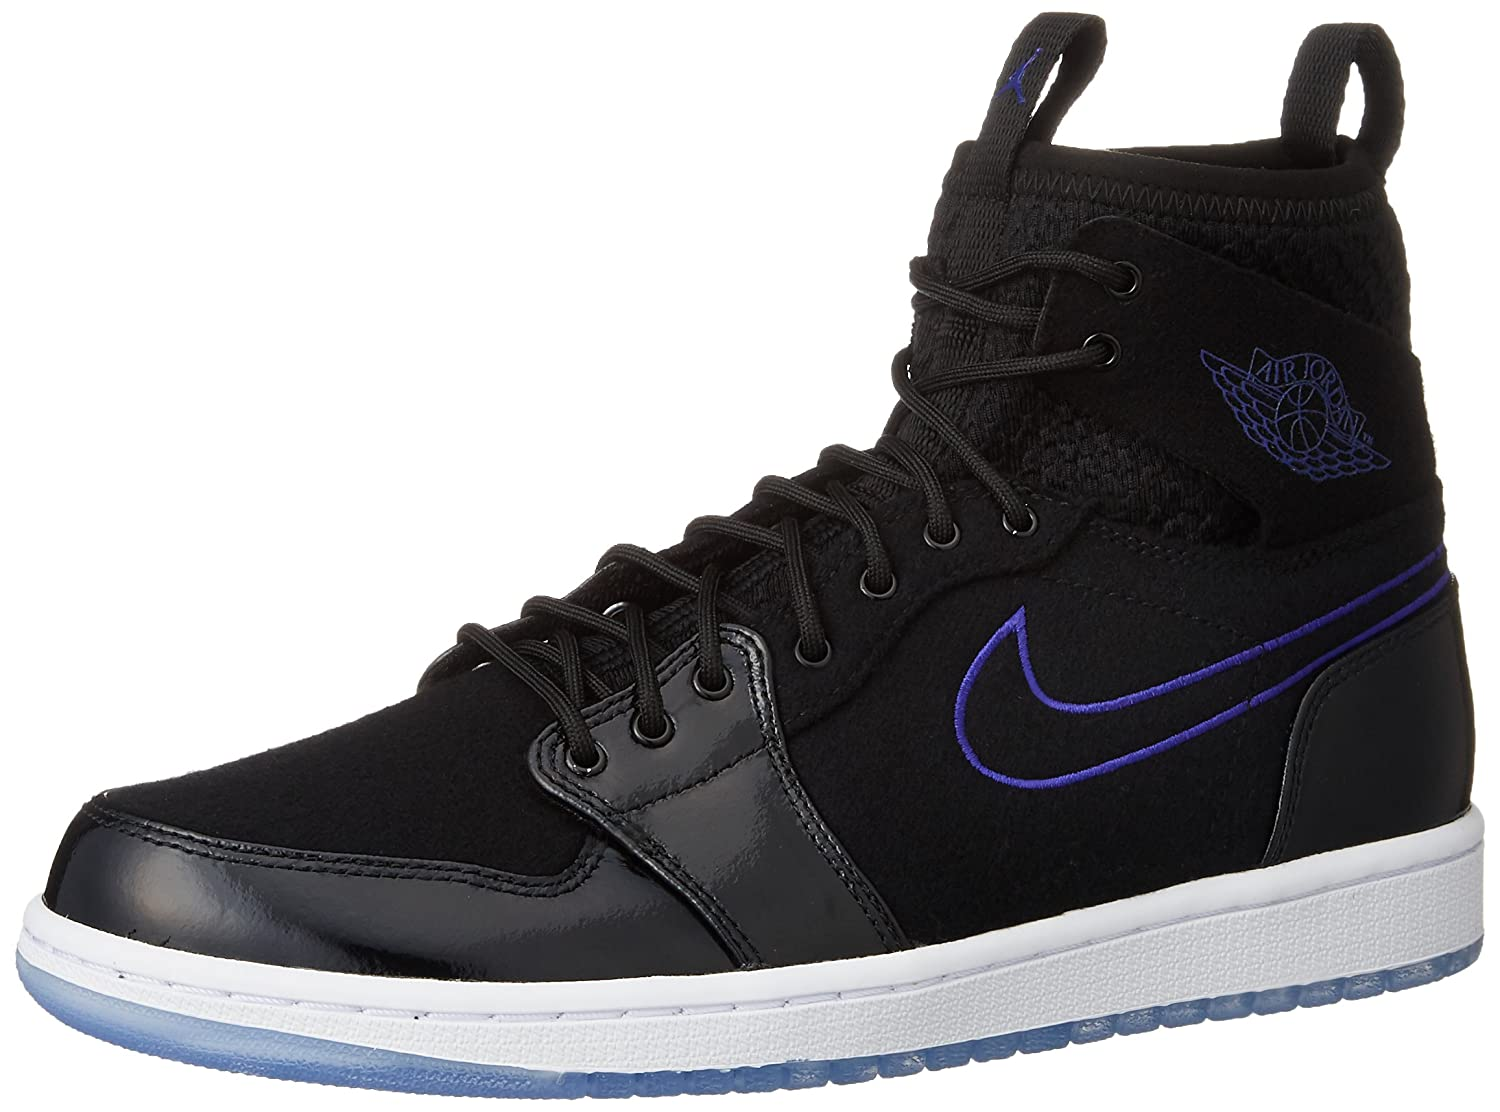 e368c3c11e5 Amazon.com: Jordan AIR JORDAN 1 RETRO ULTRA HIGH mens basketball-shoes  844700-002_11 - Black Concord Anthracite White …: Jordan: Sports & Outdoors